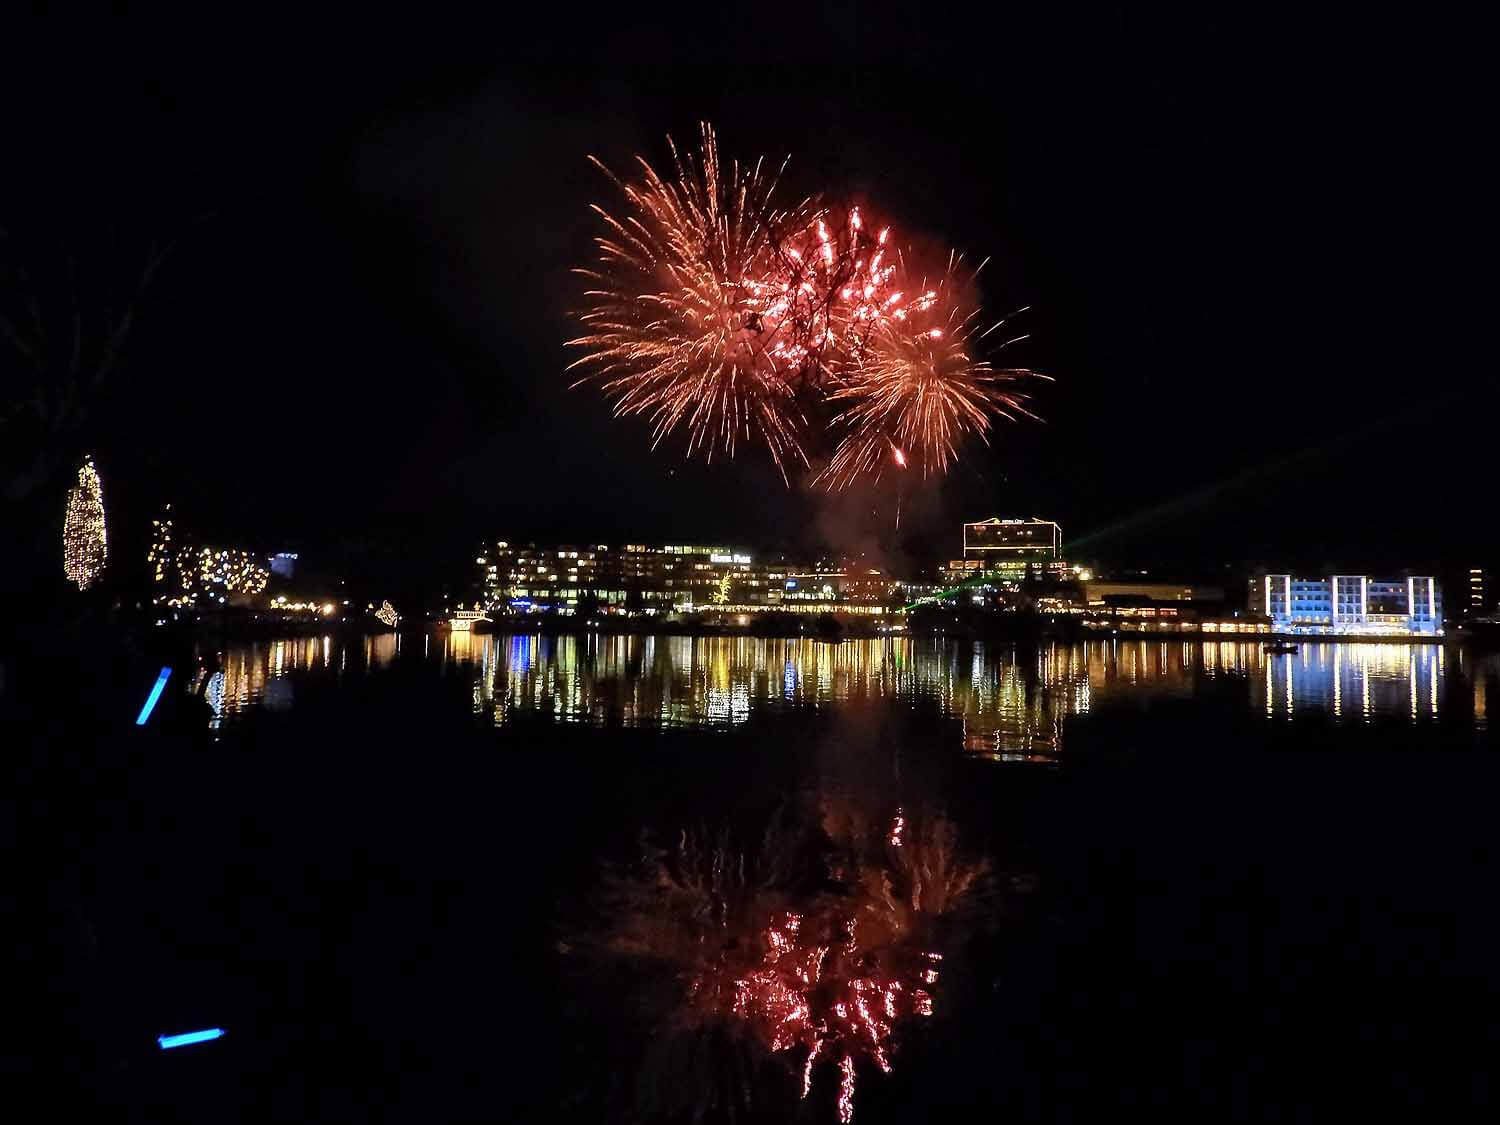 slovenia-lake-bled-new-years-eve-fireworks-red-reflection.jpg